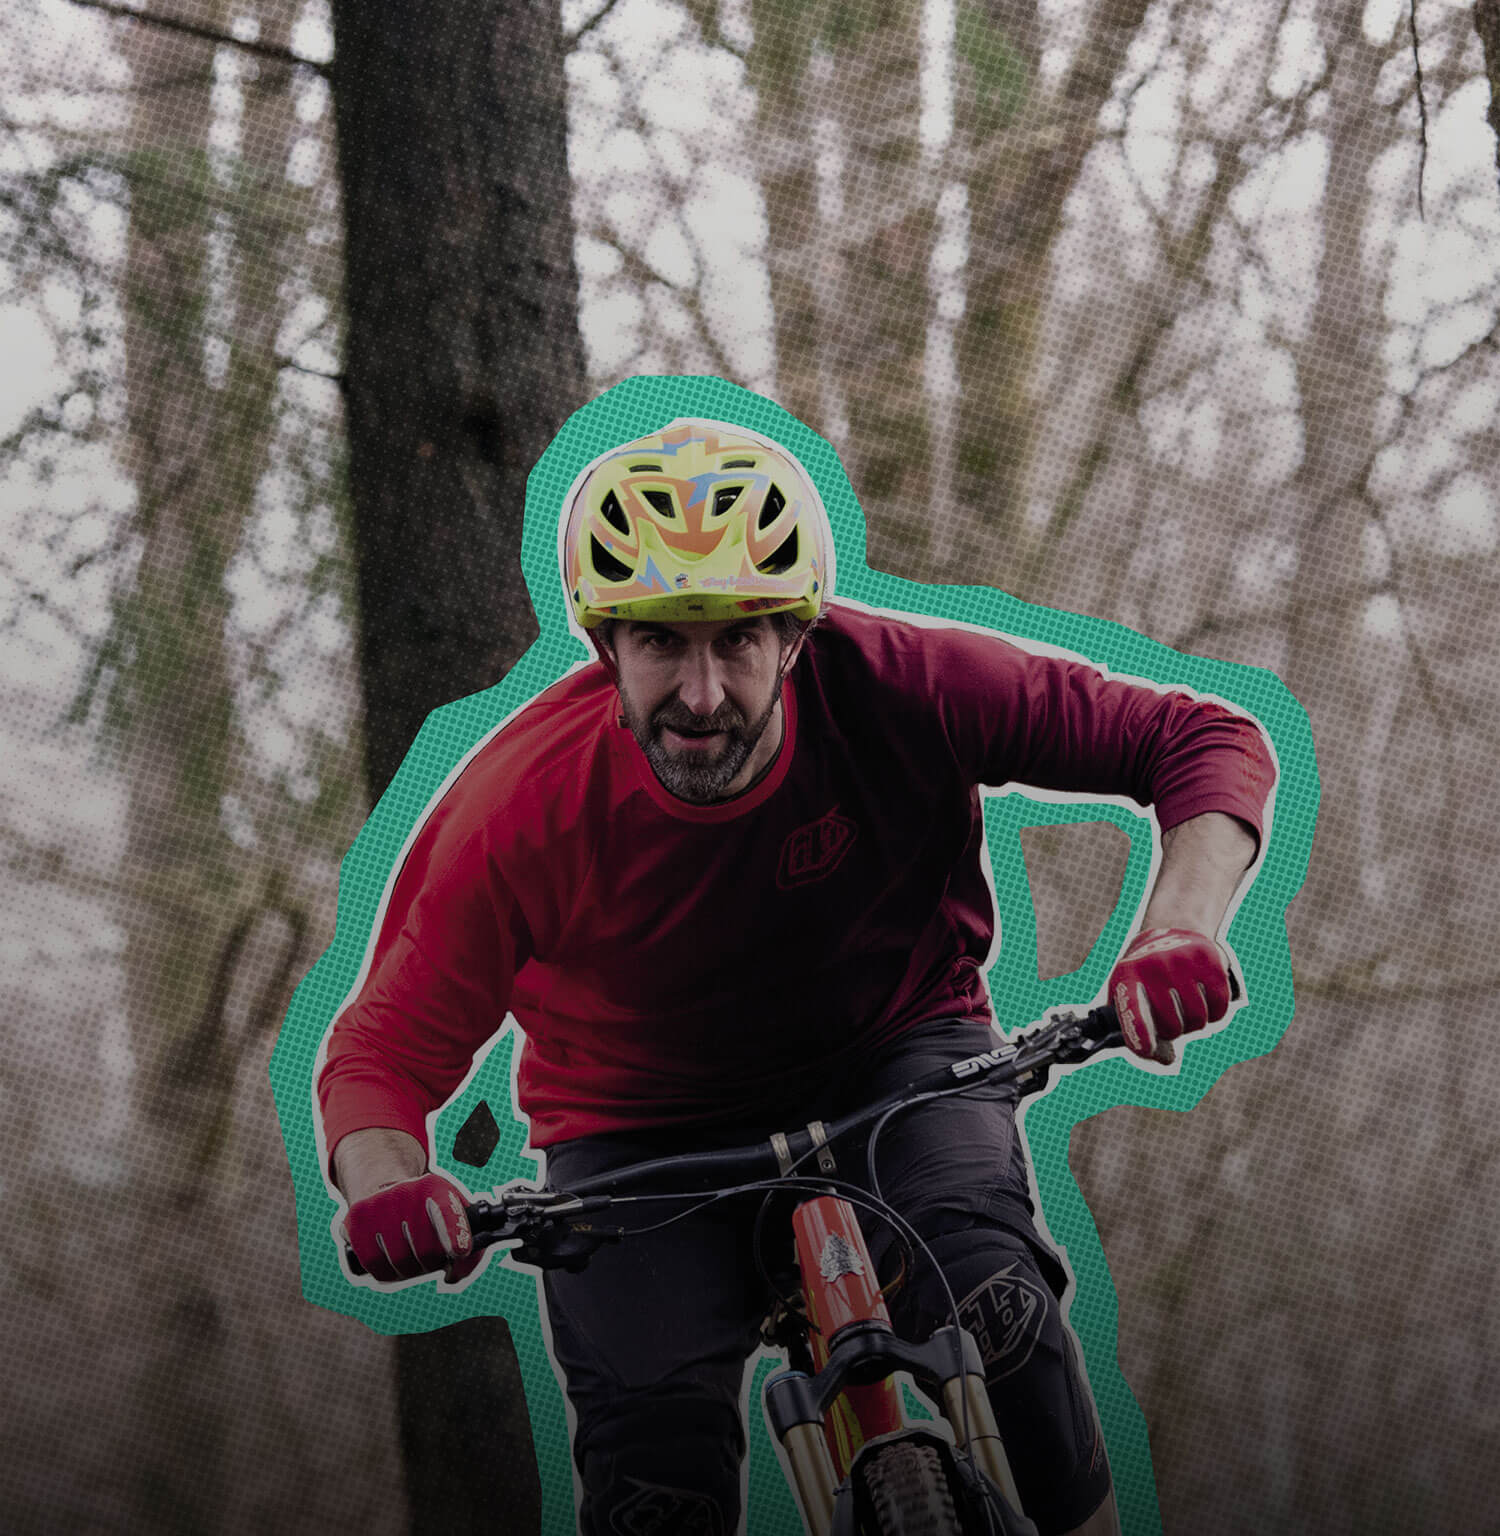 Bikmo MTB Insurance - Tablet